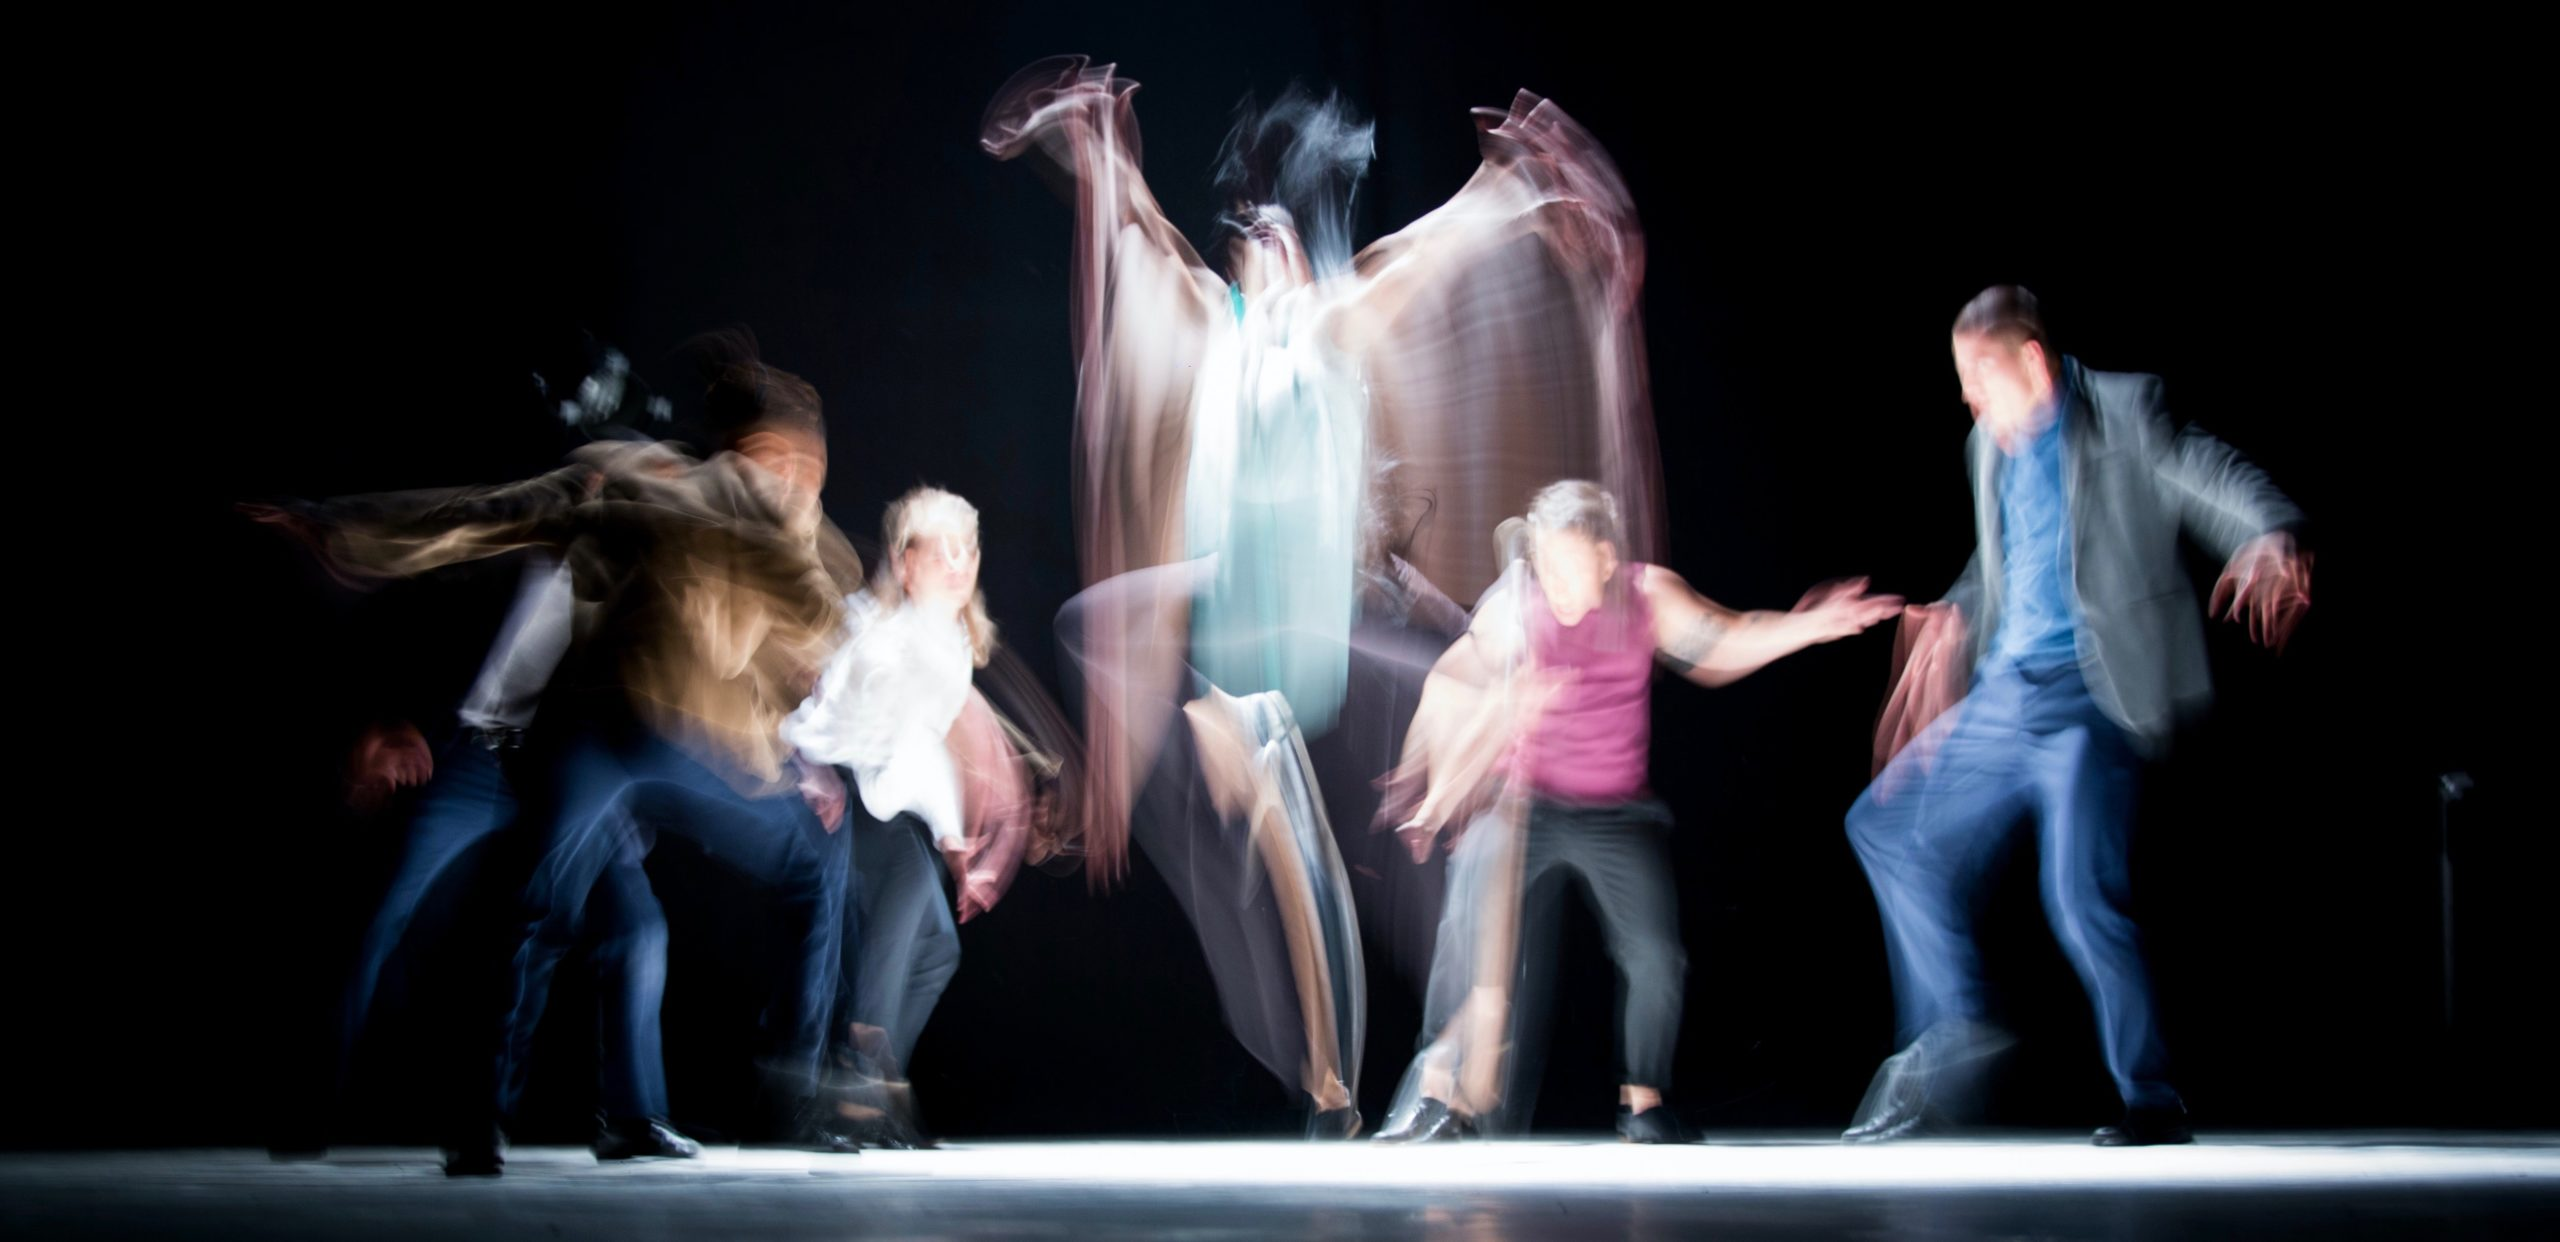 Image of improv performance